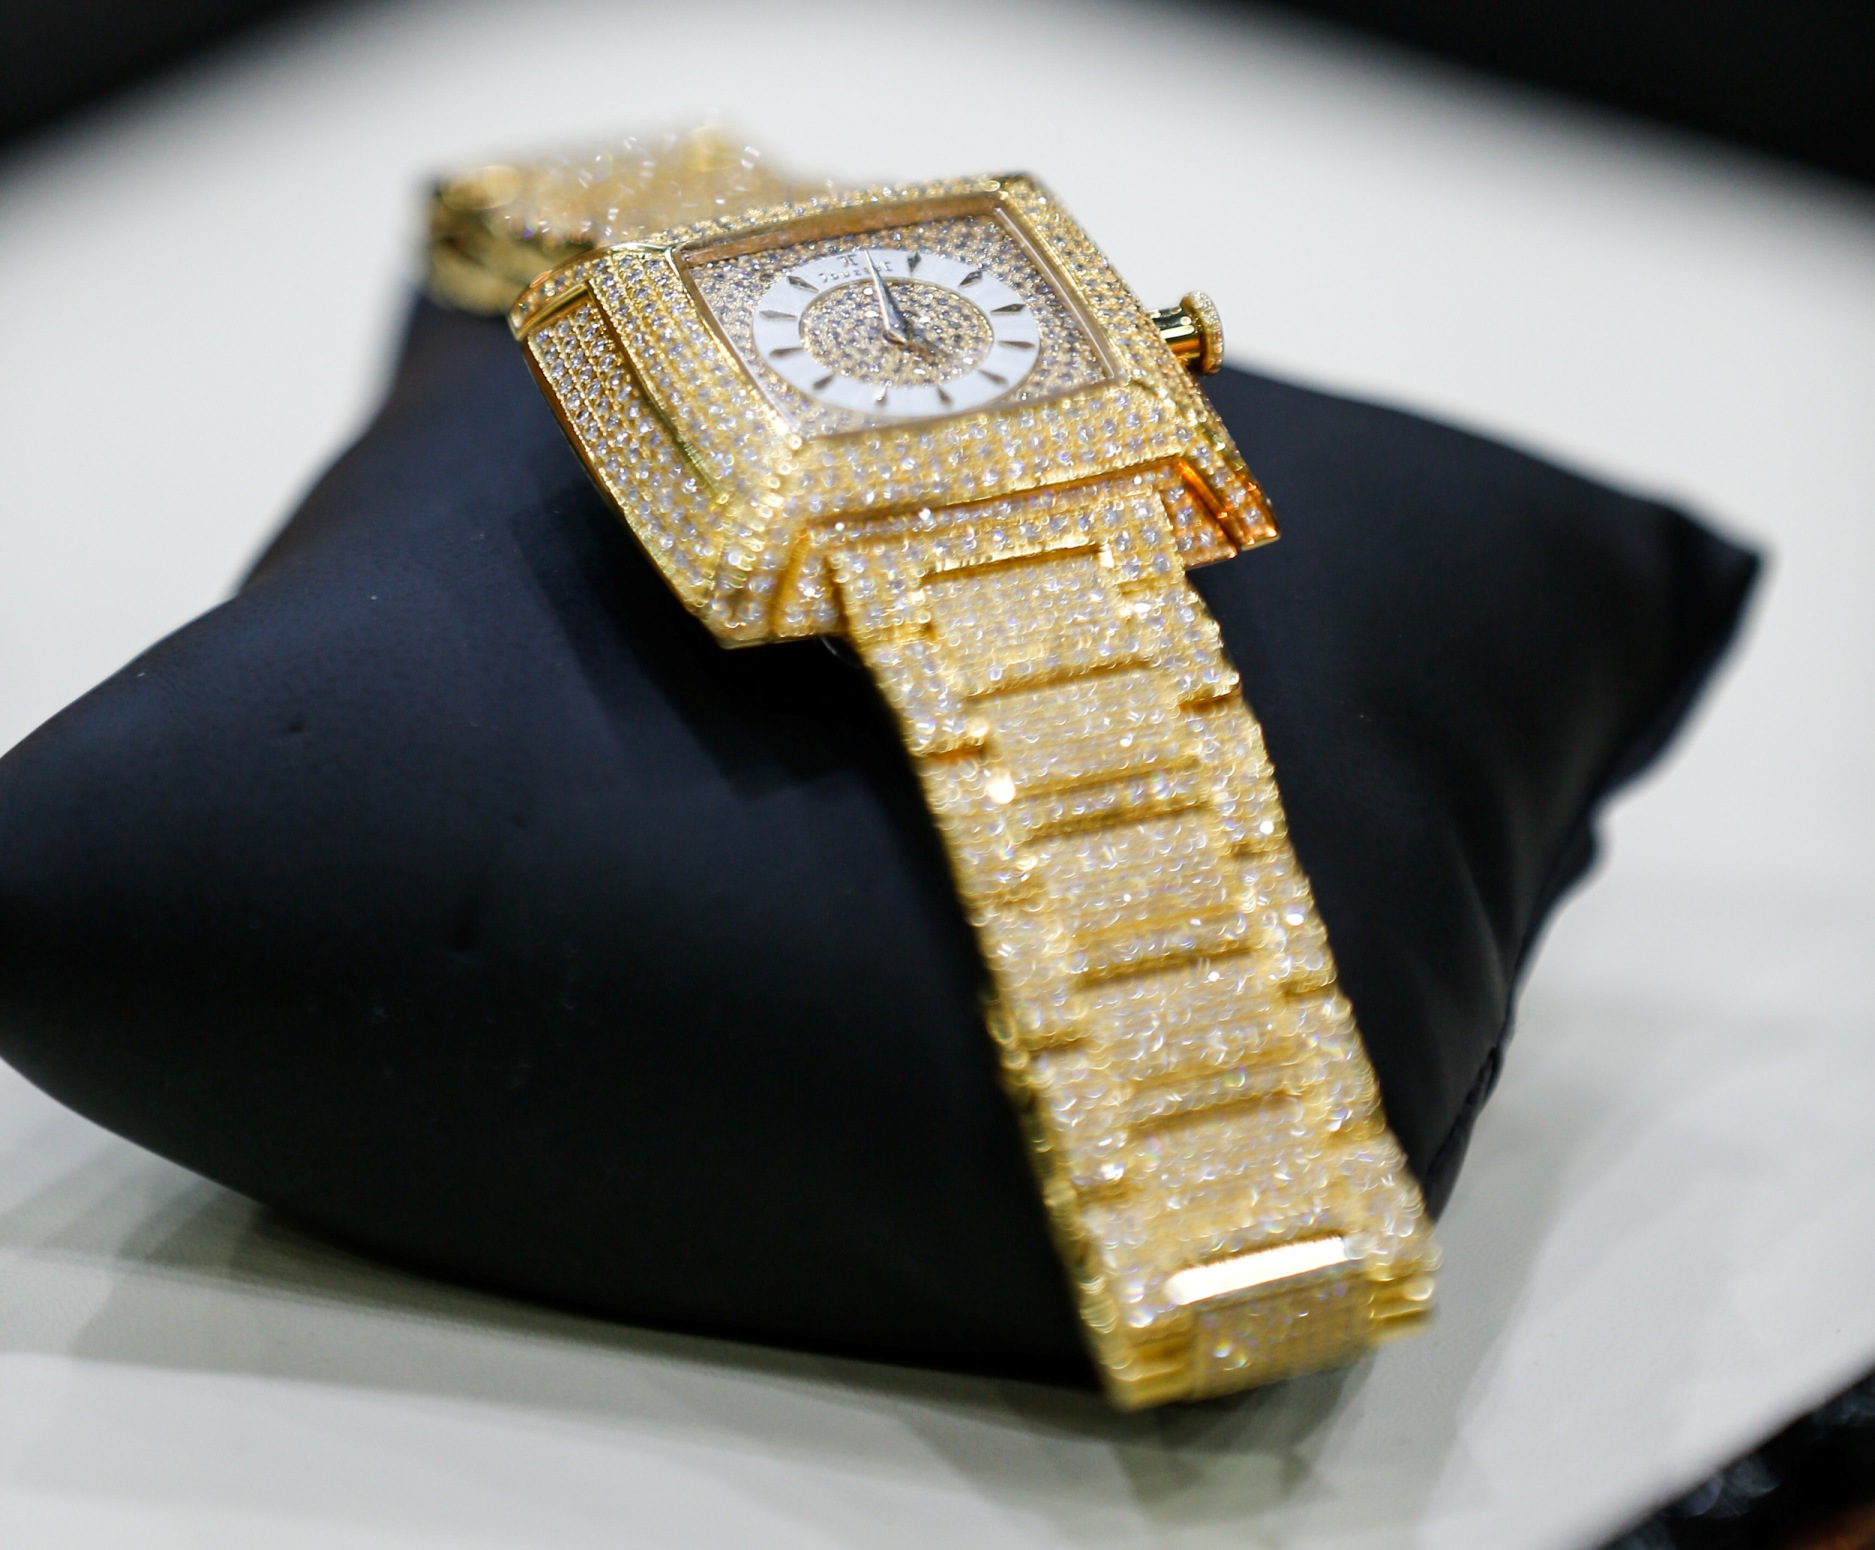 A dazzling Swiss made watch from Al Daham with sparkling diamonds retails for AED 43,000.